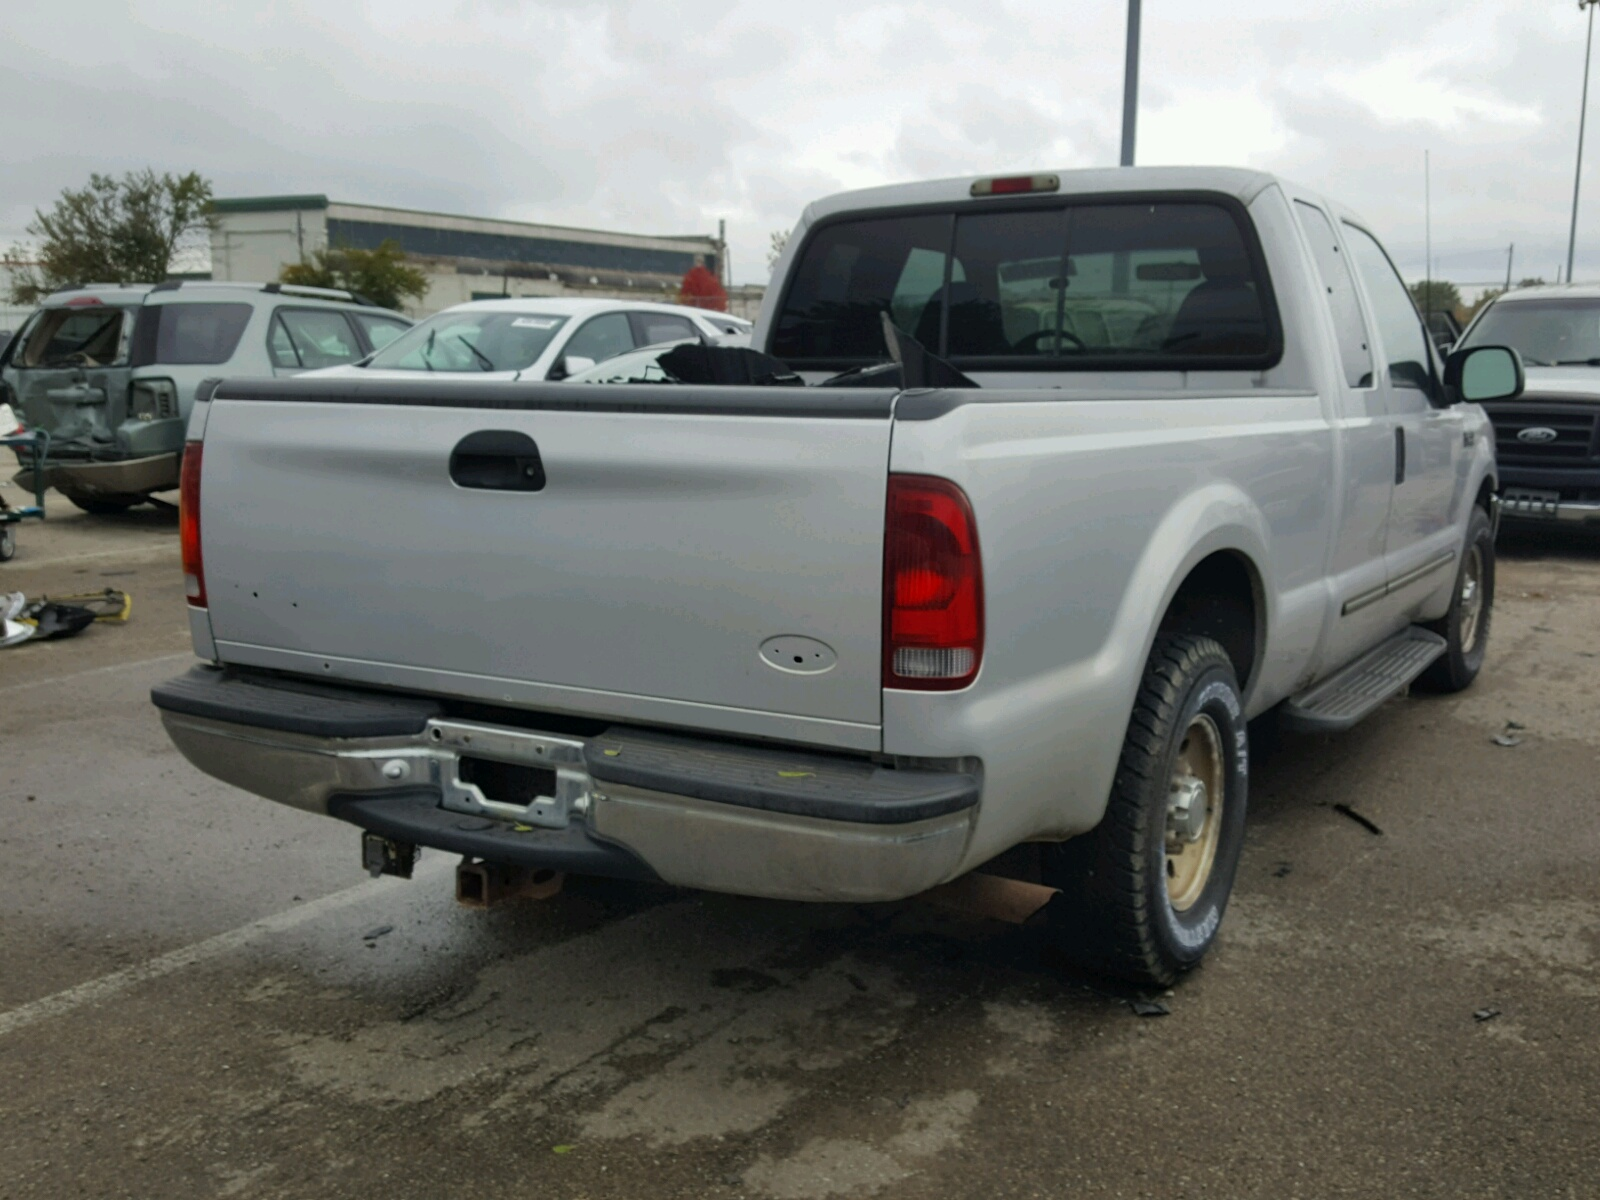 Auto Auction Ended On Vin 1ftnx20s1yeb23237 2000 Ford F250 Super In Duty 68l Rear View